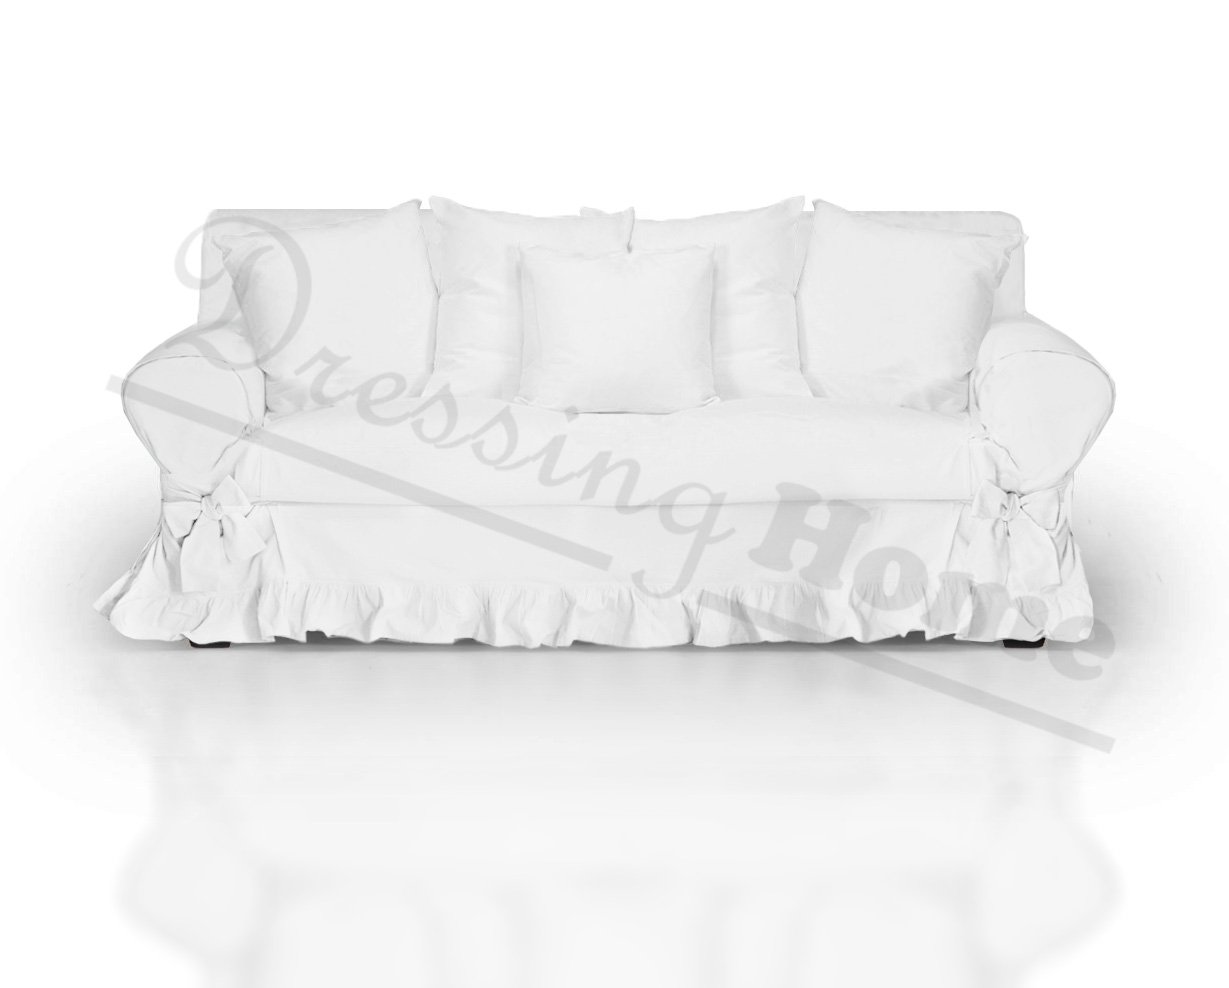 Blanc Mariclo Vintage Shabby Chic Farmhouse Couch Covers Sofa Protector Sofa Cover 2 Seater Ruffles White 100 Cotton